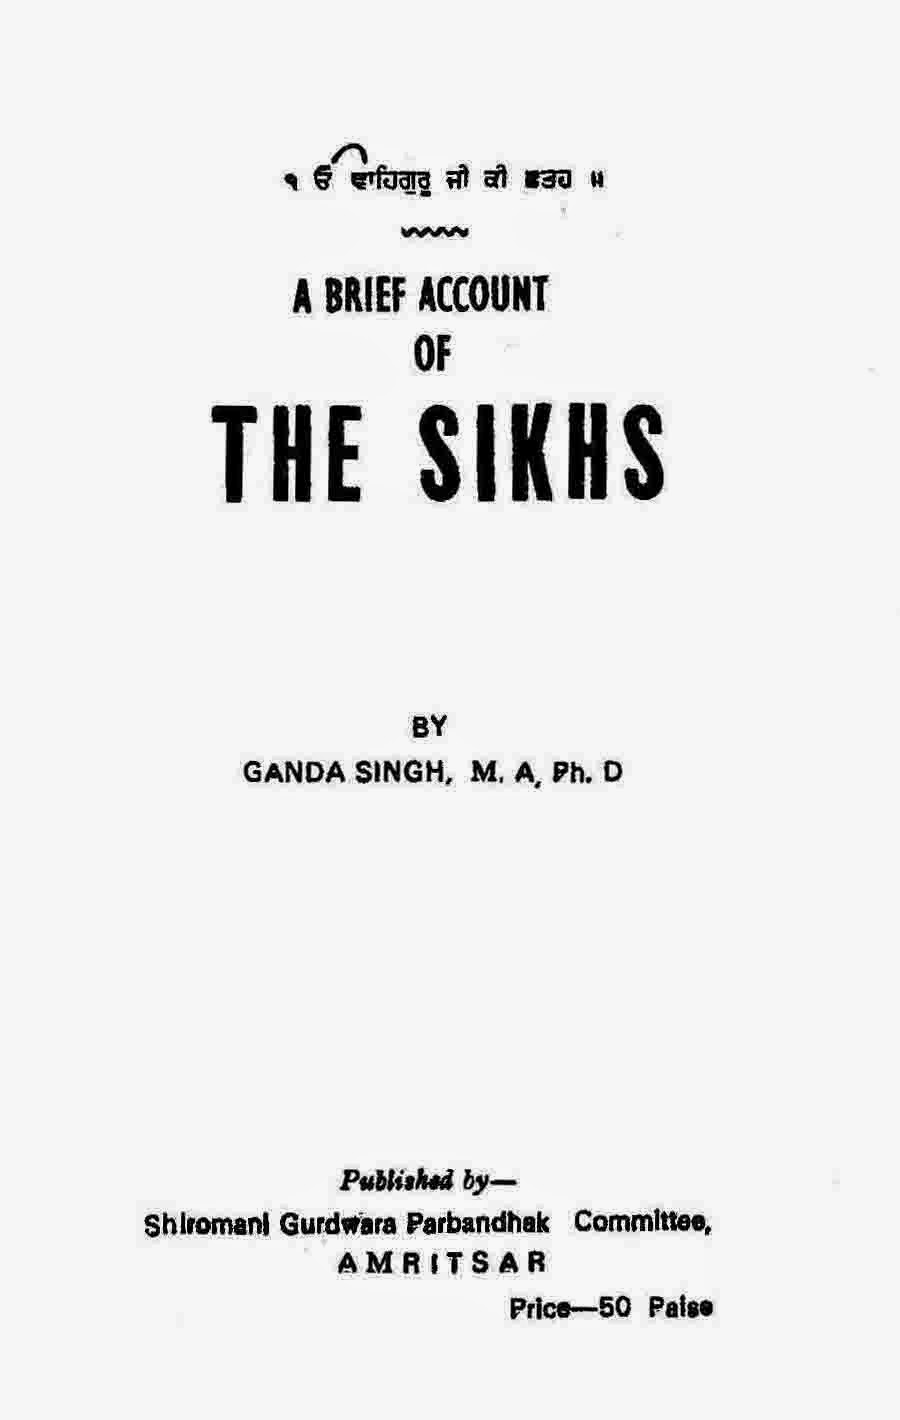 http://sikhdigitallibrary.blogspot.com/2015/06/a-brief-account-of-sikhs-dr-ganda-singh.html